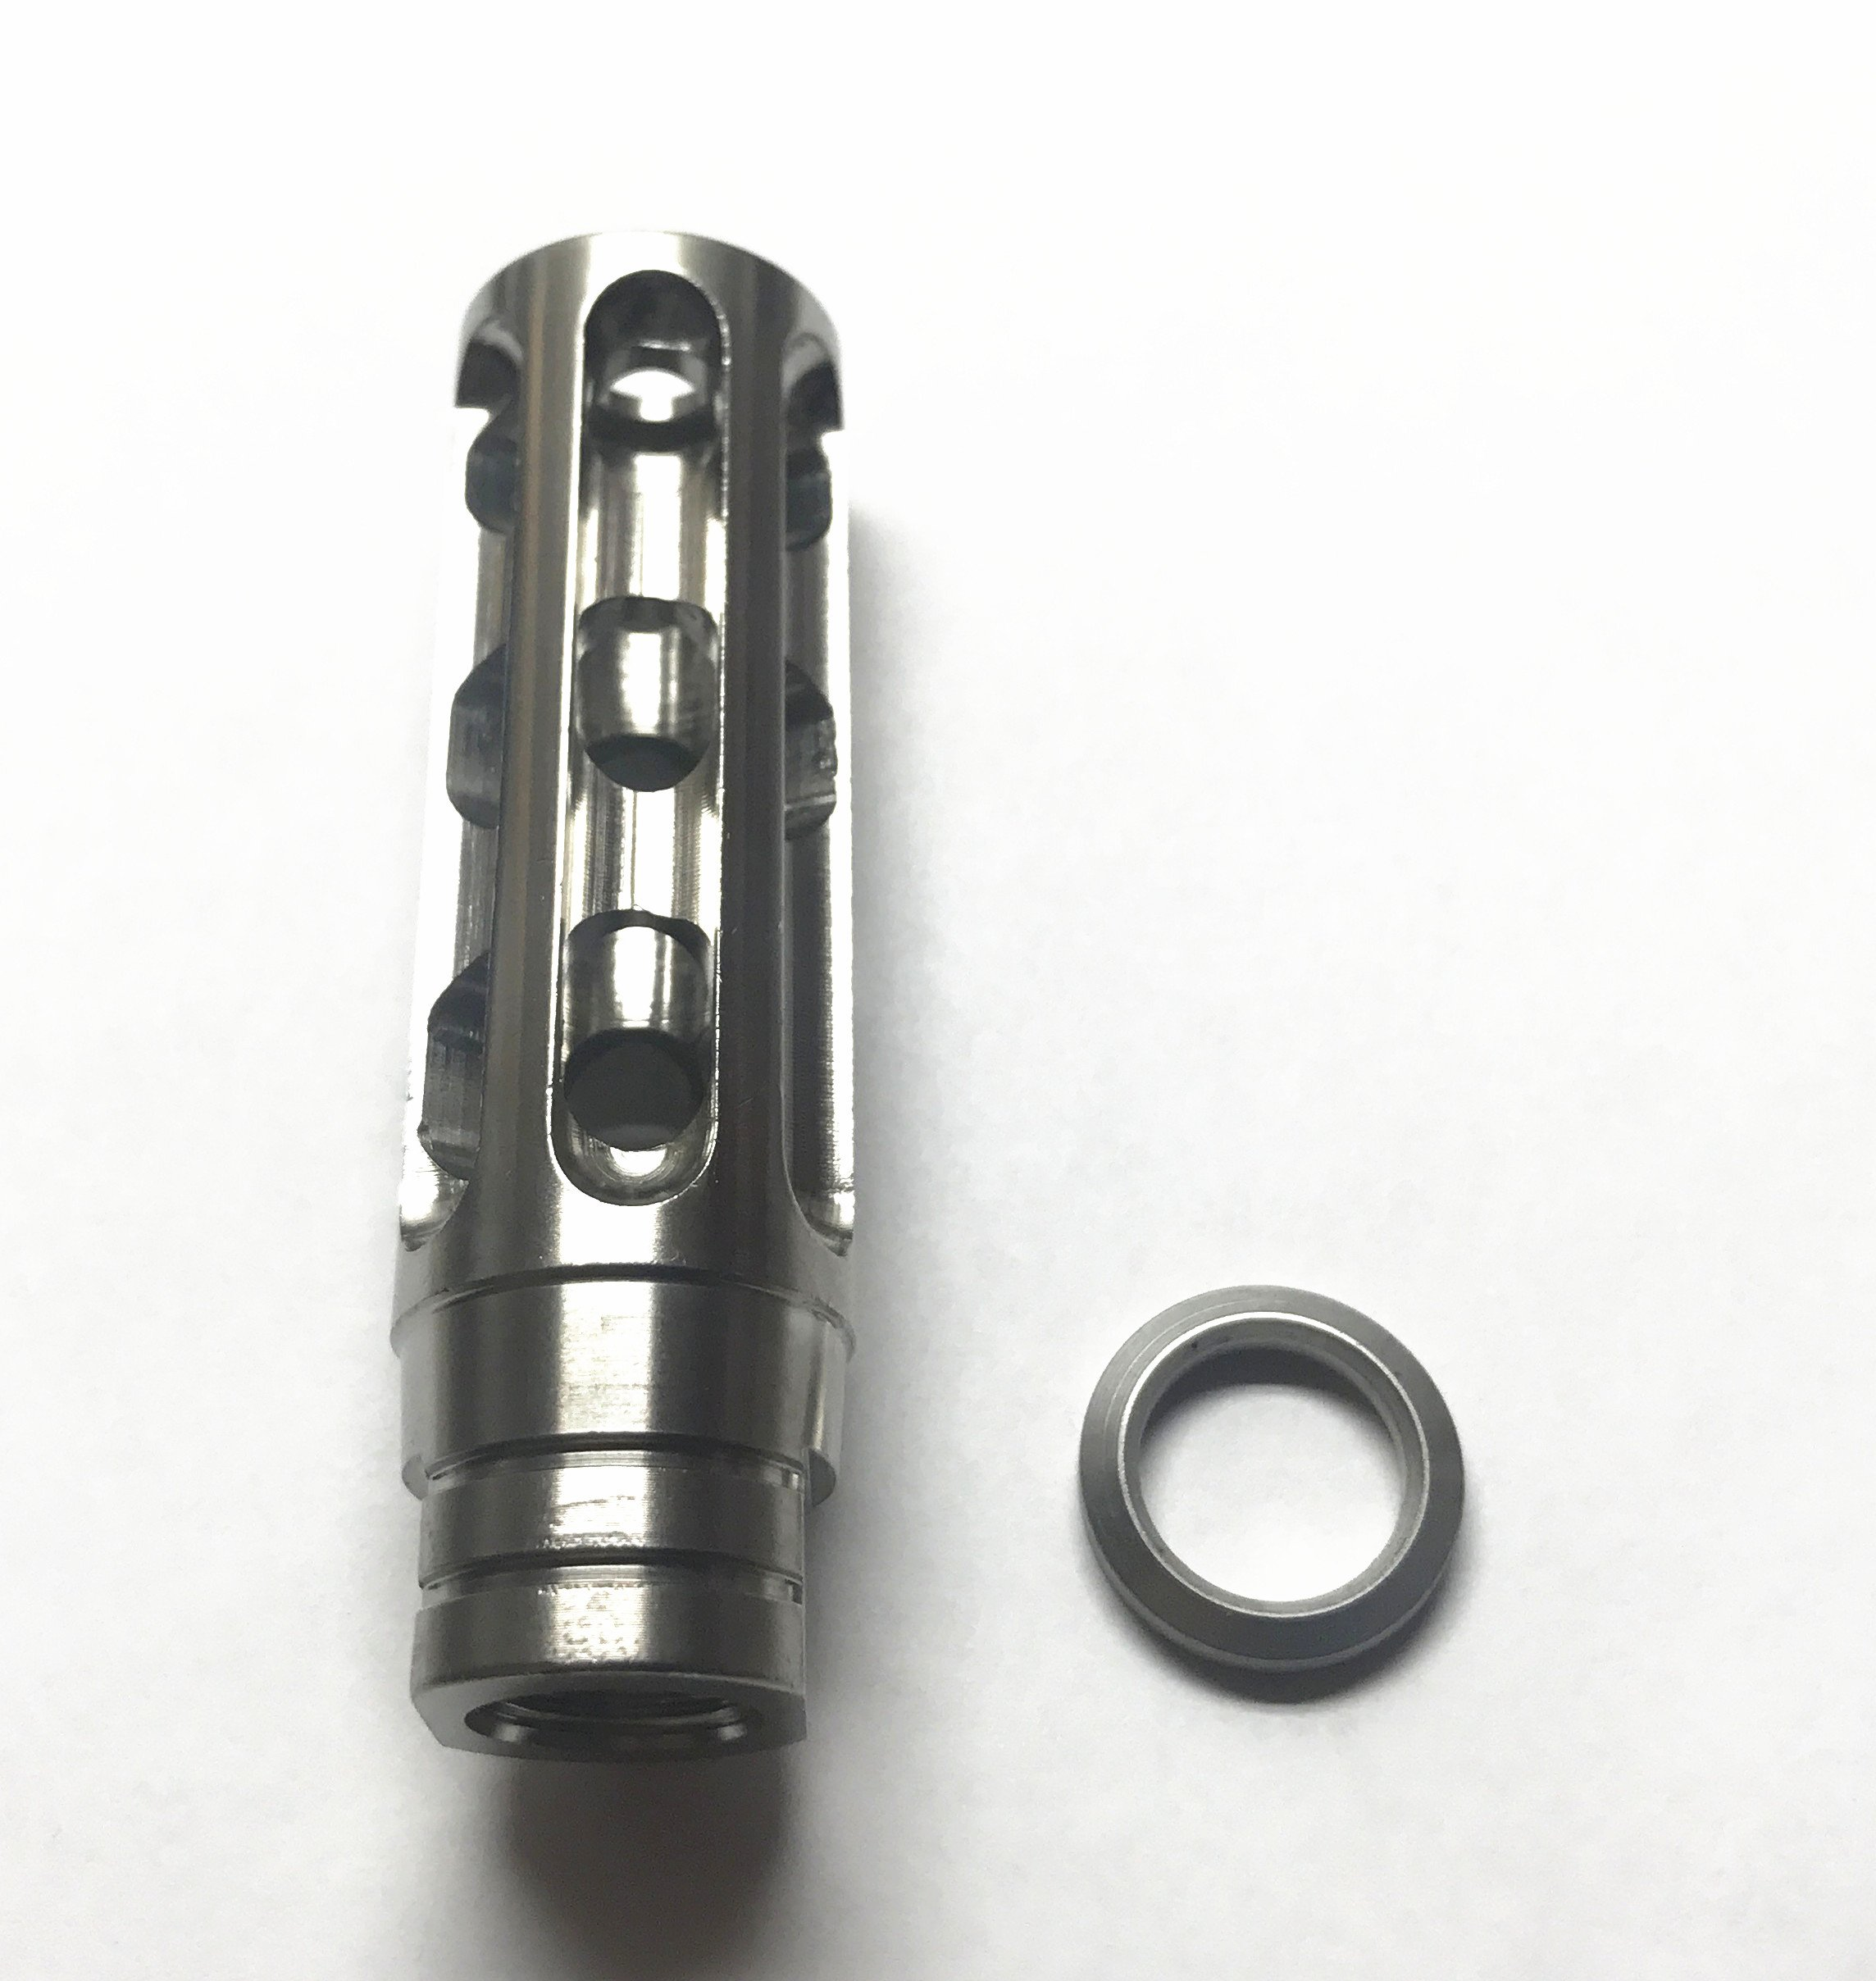 Stainless Steel 6 5 Creedmoor Muzzle Brake With Free Crush Washer